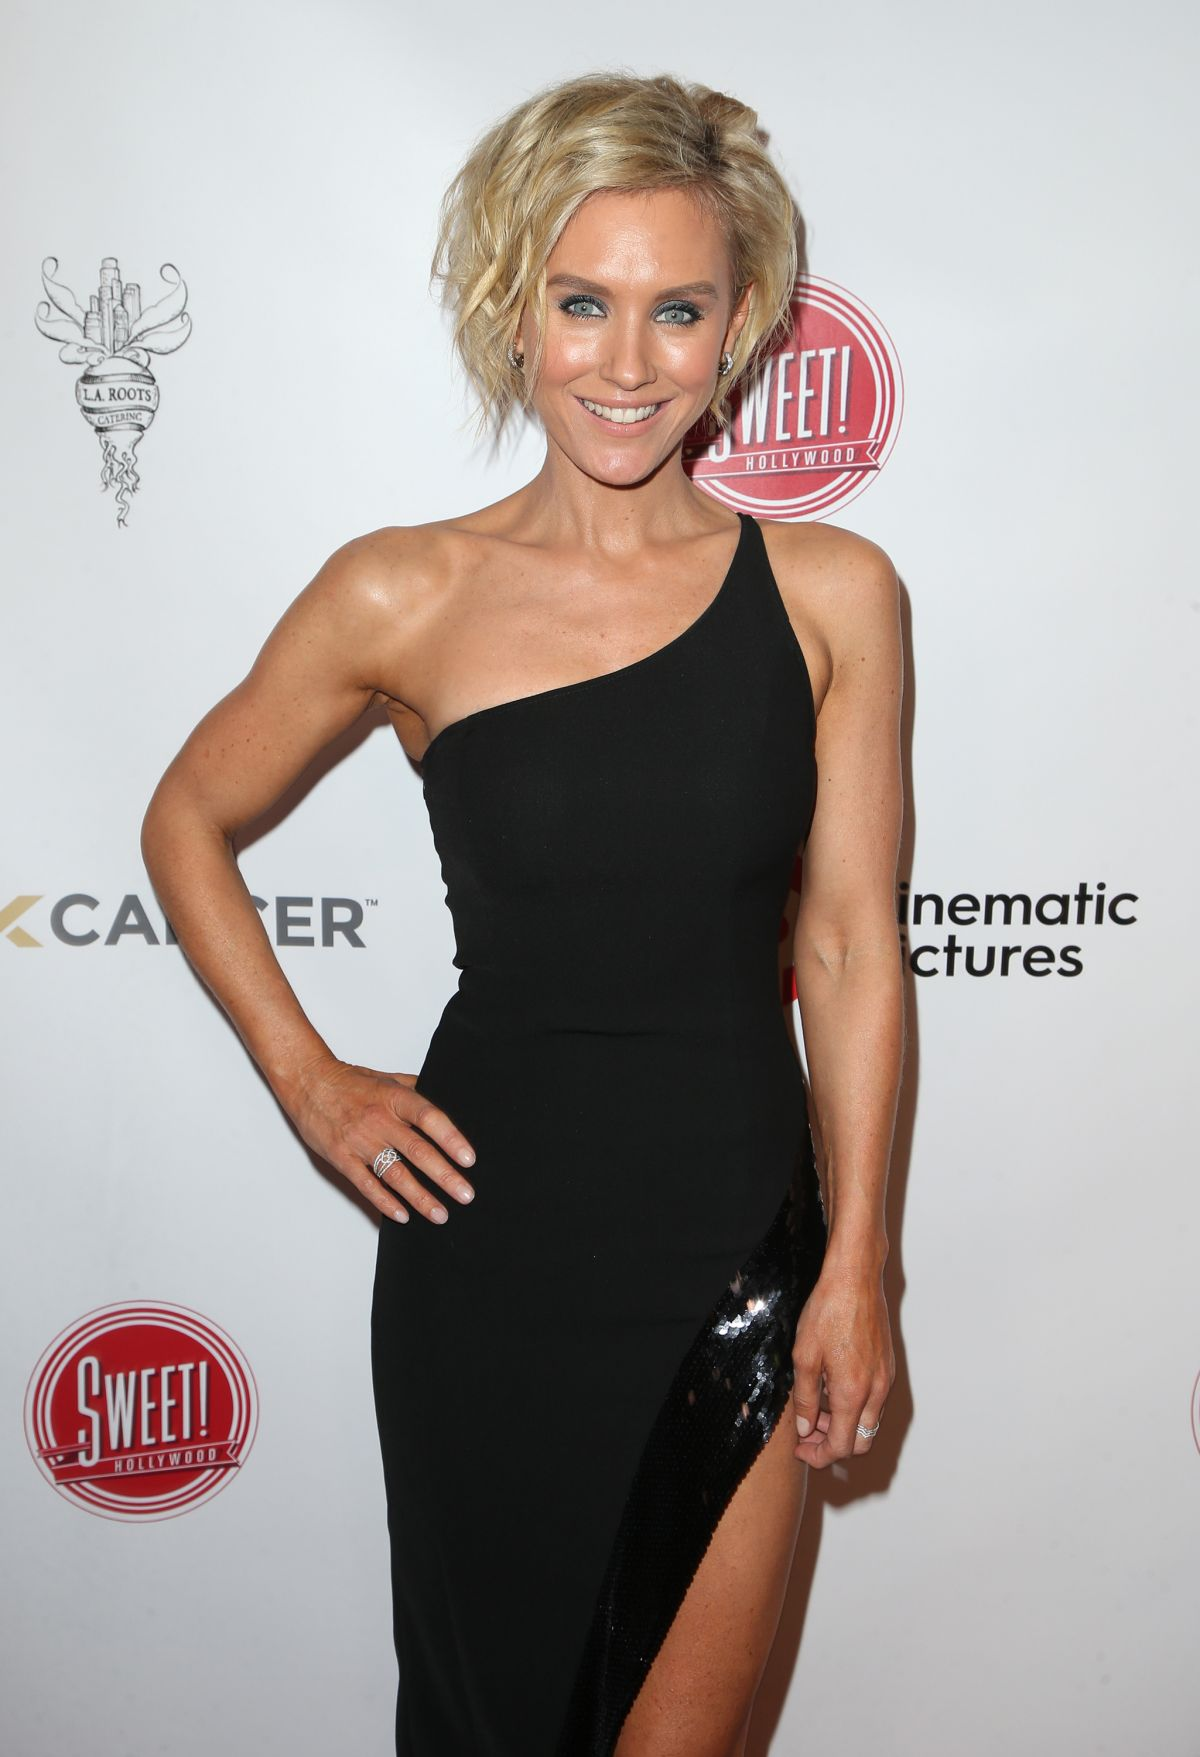 Nicky Whelan At In The Tub Volume 2 Book Launch For Hollywood 12